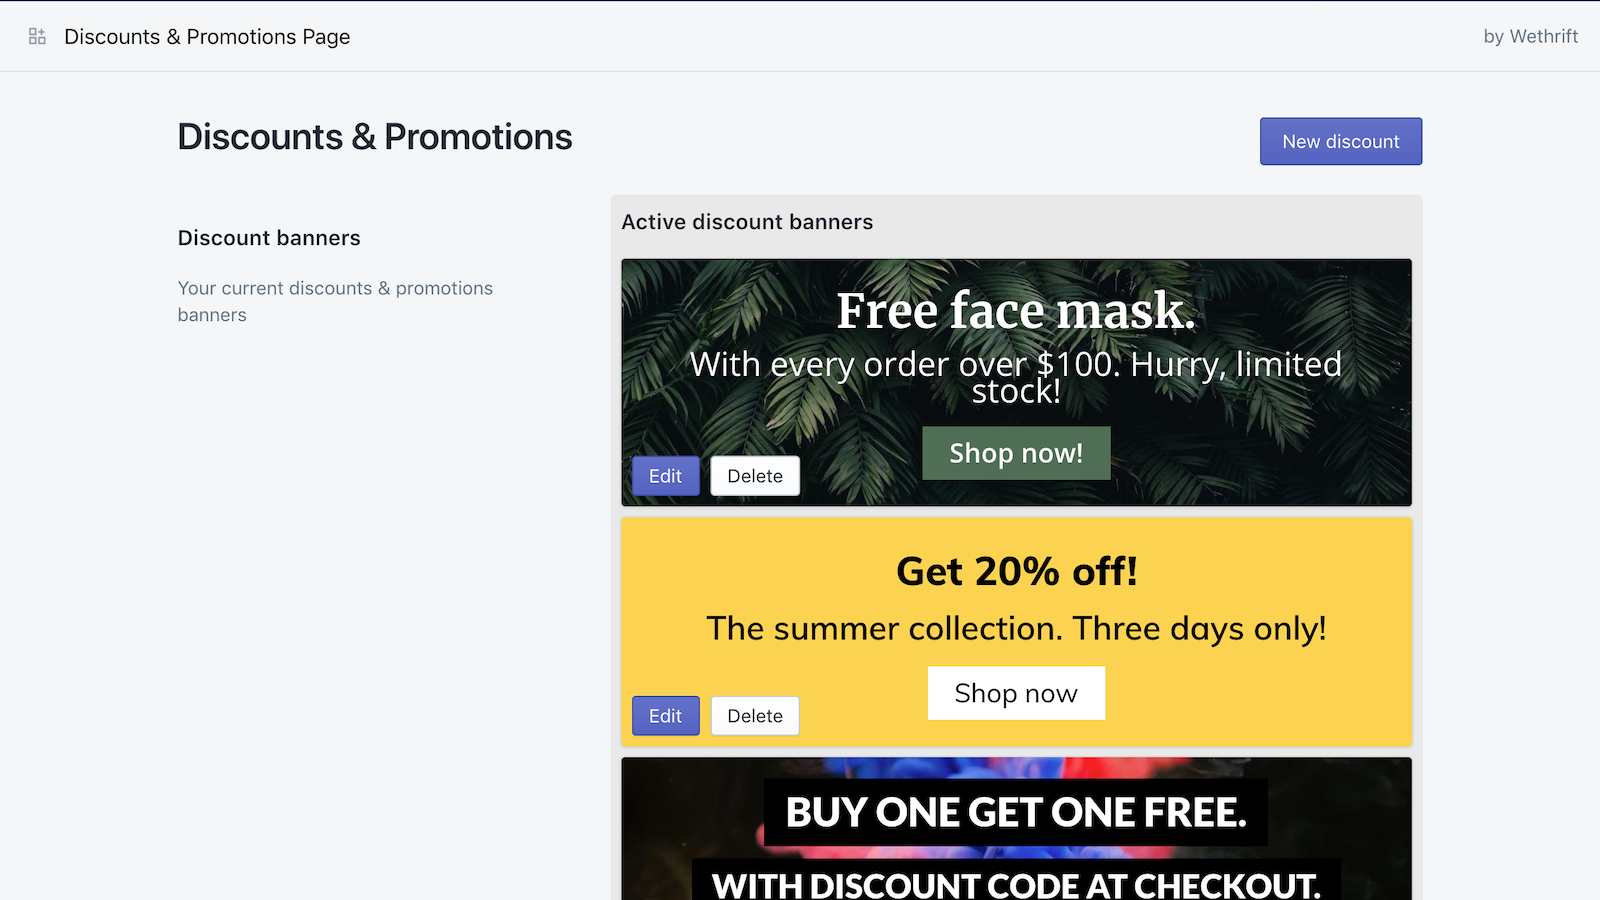 Easy Discounts & Promotions app dashboard